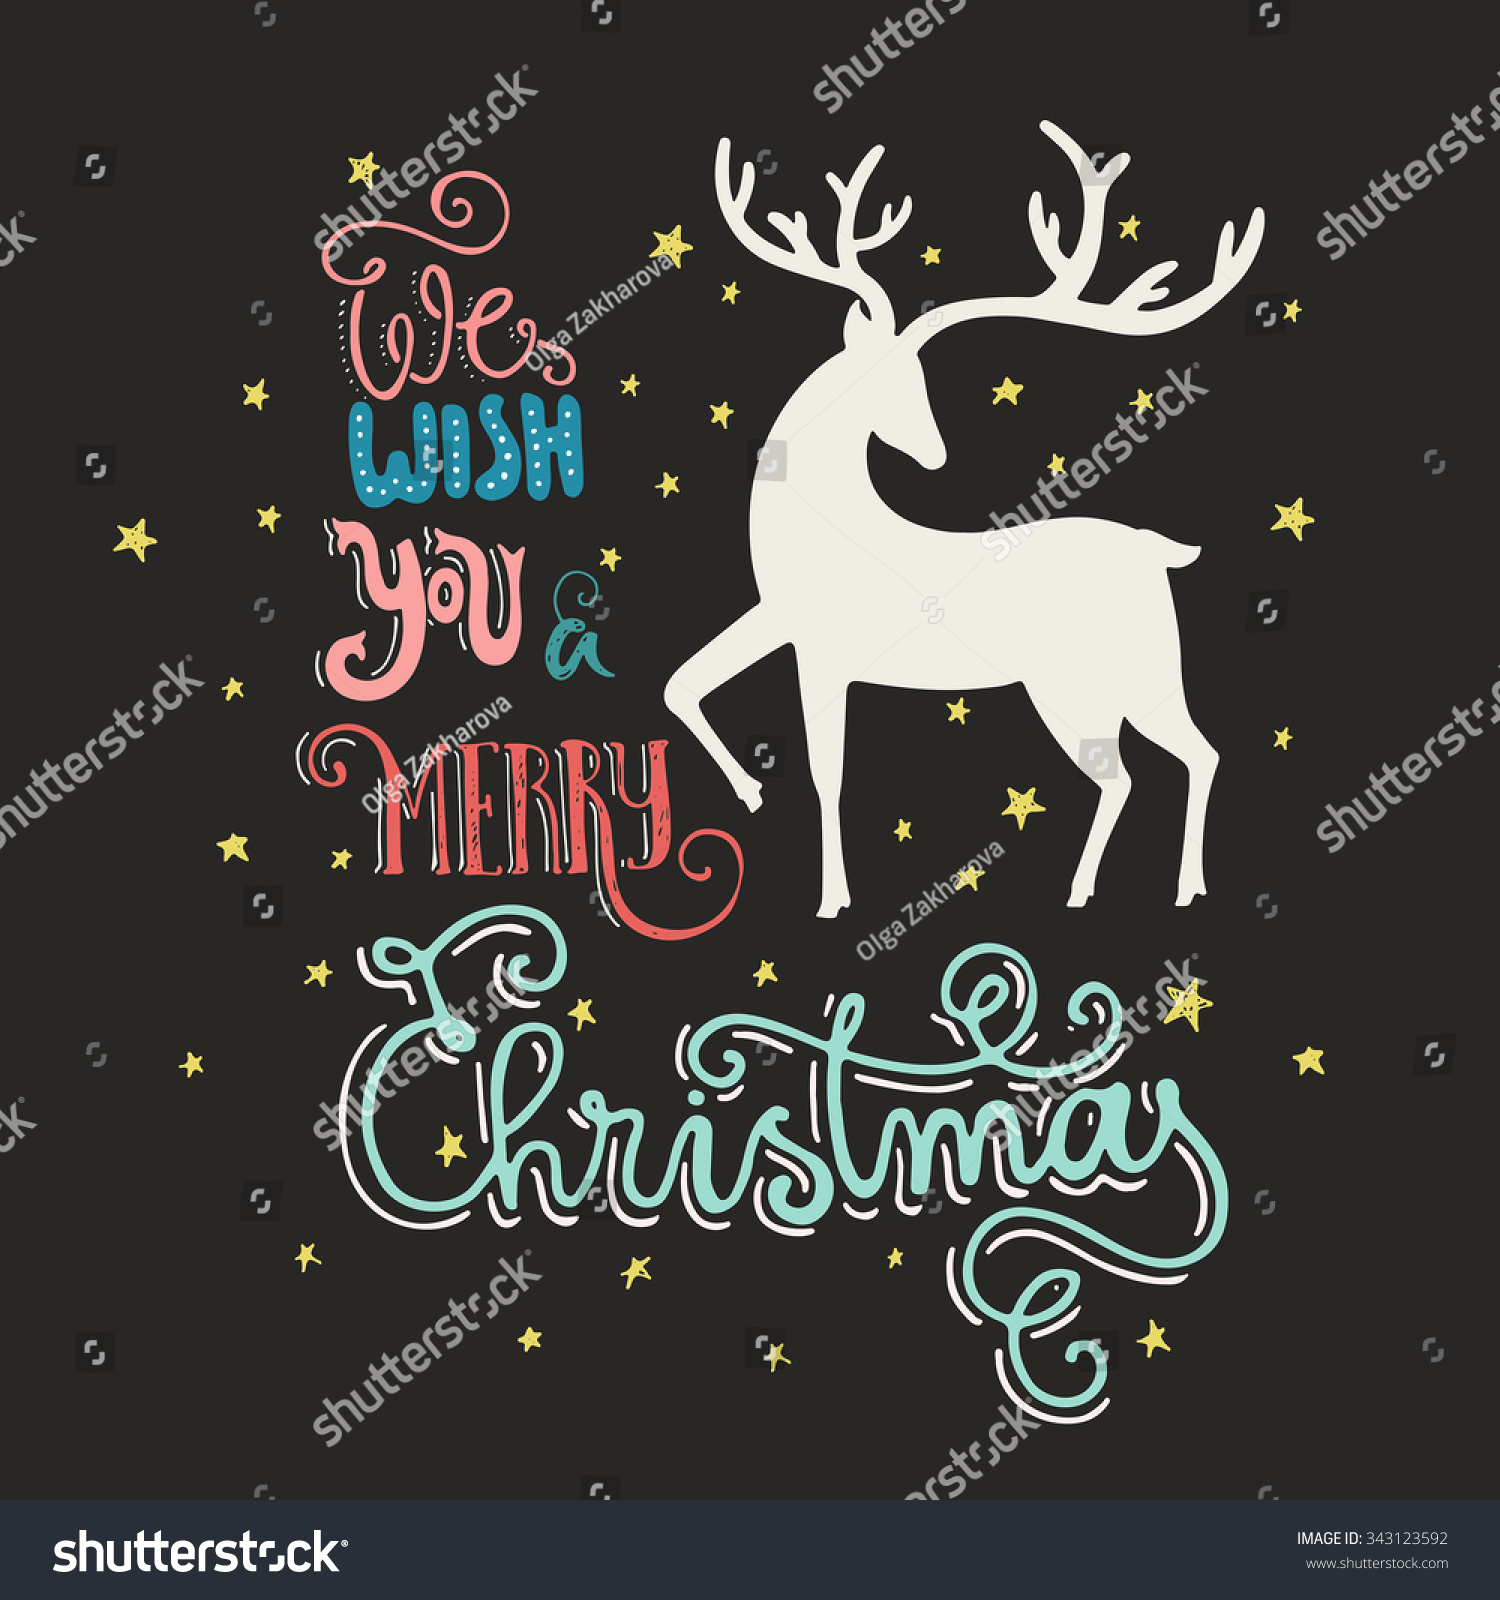 Unique Christmas Card Handdrawn Lettering Silhouette Stock Vector ...